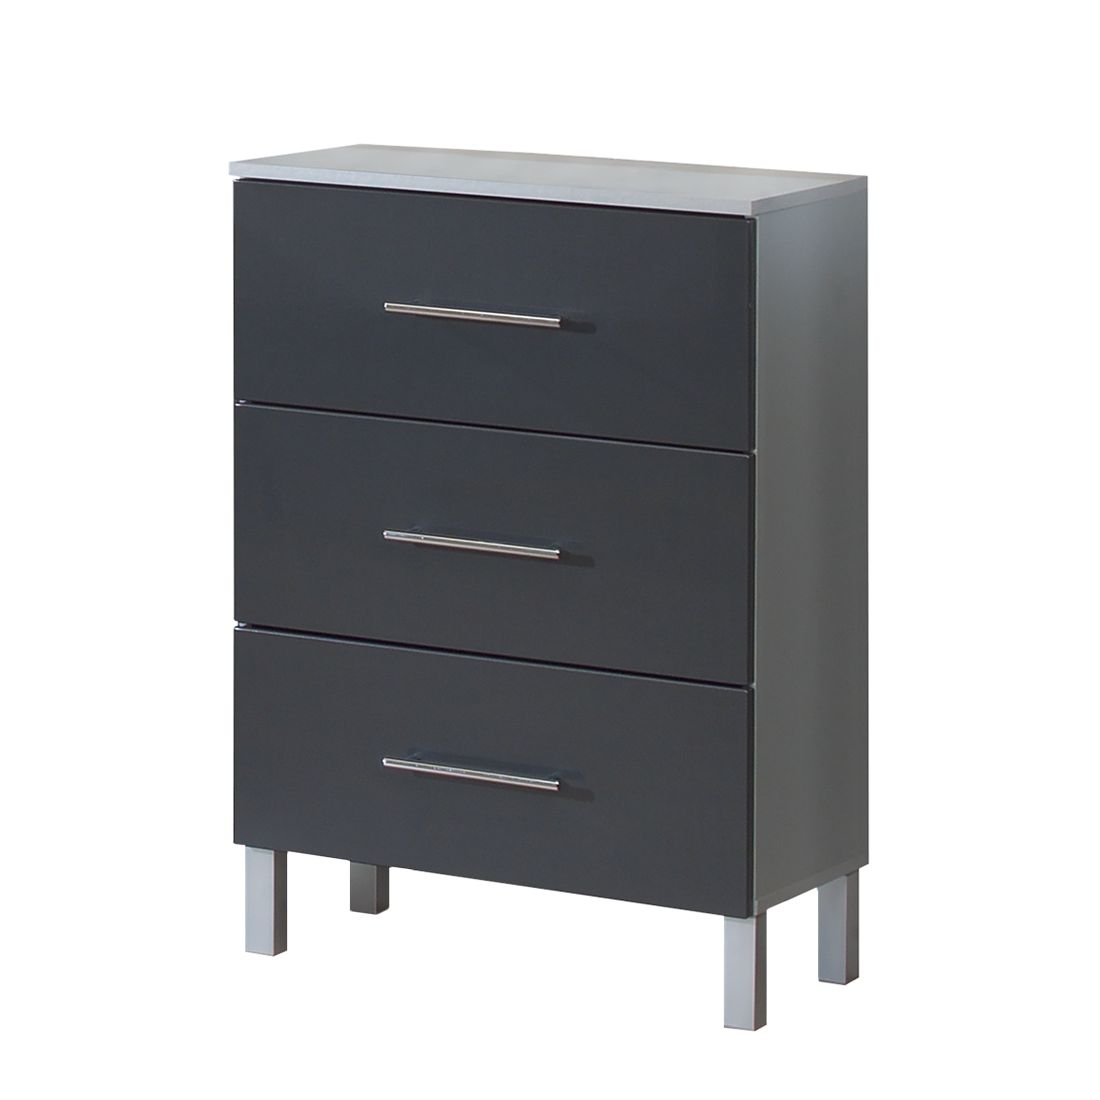 badschrank poco mdf spanplatte anthrazit hochglanz silber modell 1. Black Bedroom Furniture Sets. Home Design Ideas